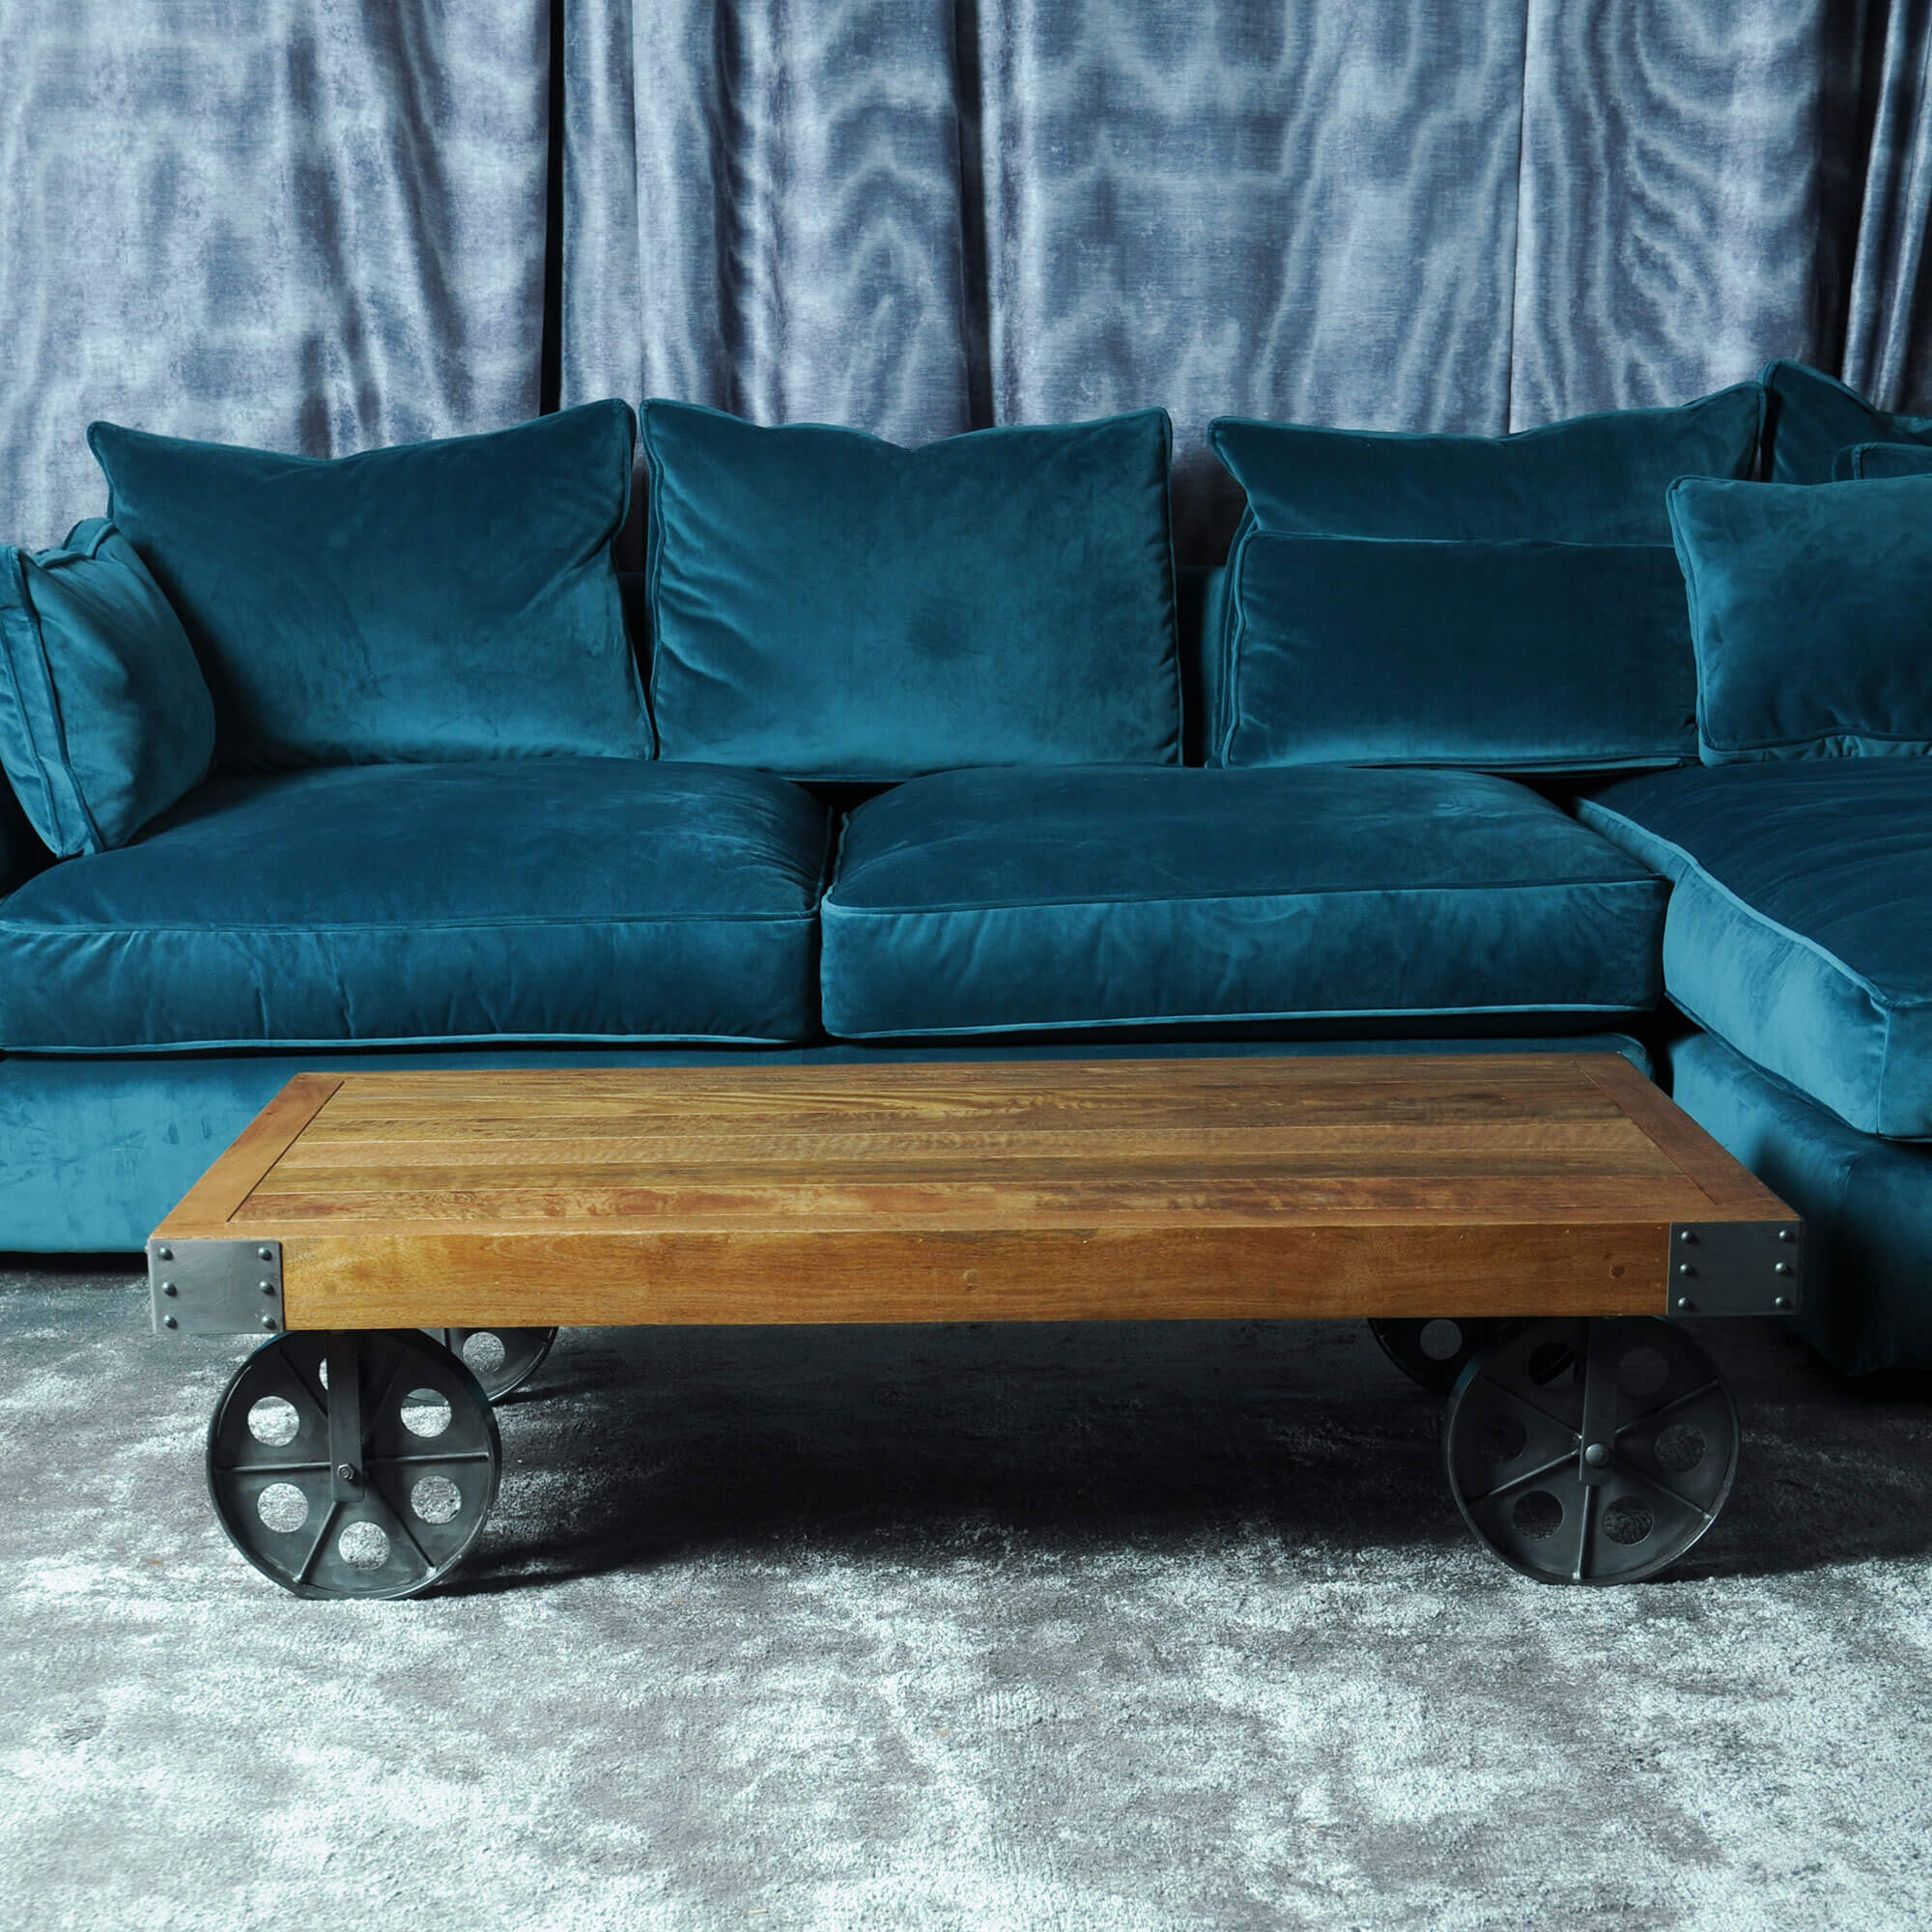 Urban Industrial Coffee table with Wheels